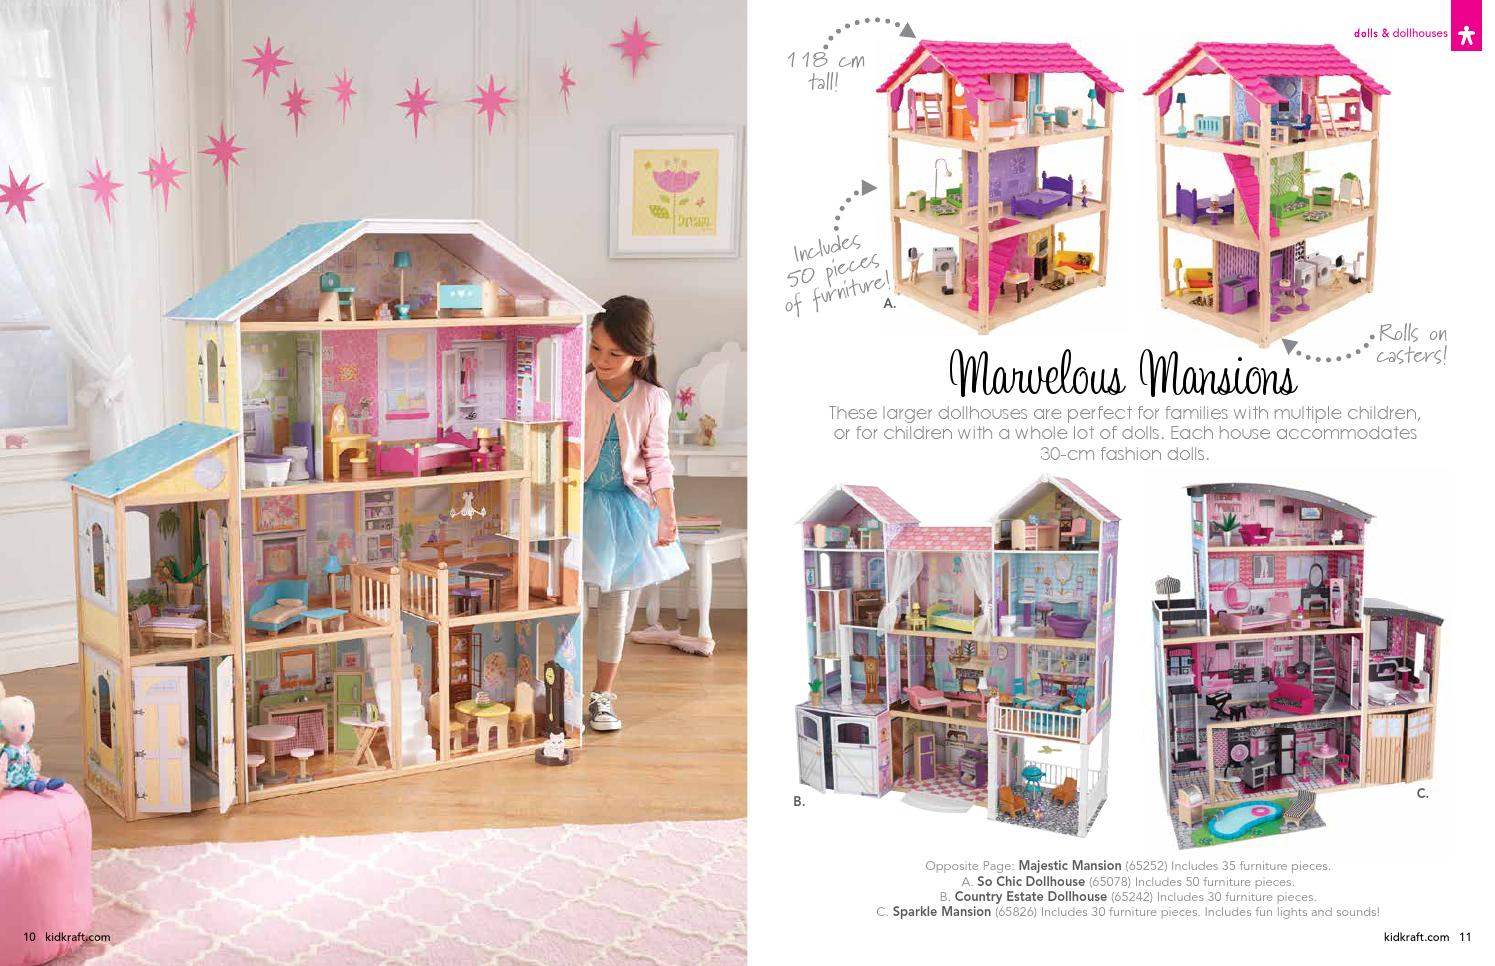 Charming Kidkraft Majestic Mansion Dollhouse 65252 Made Of Wood In Four Tier Design For Kids Play Room Furniture Ideas